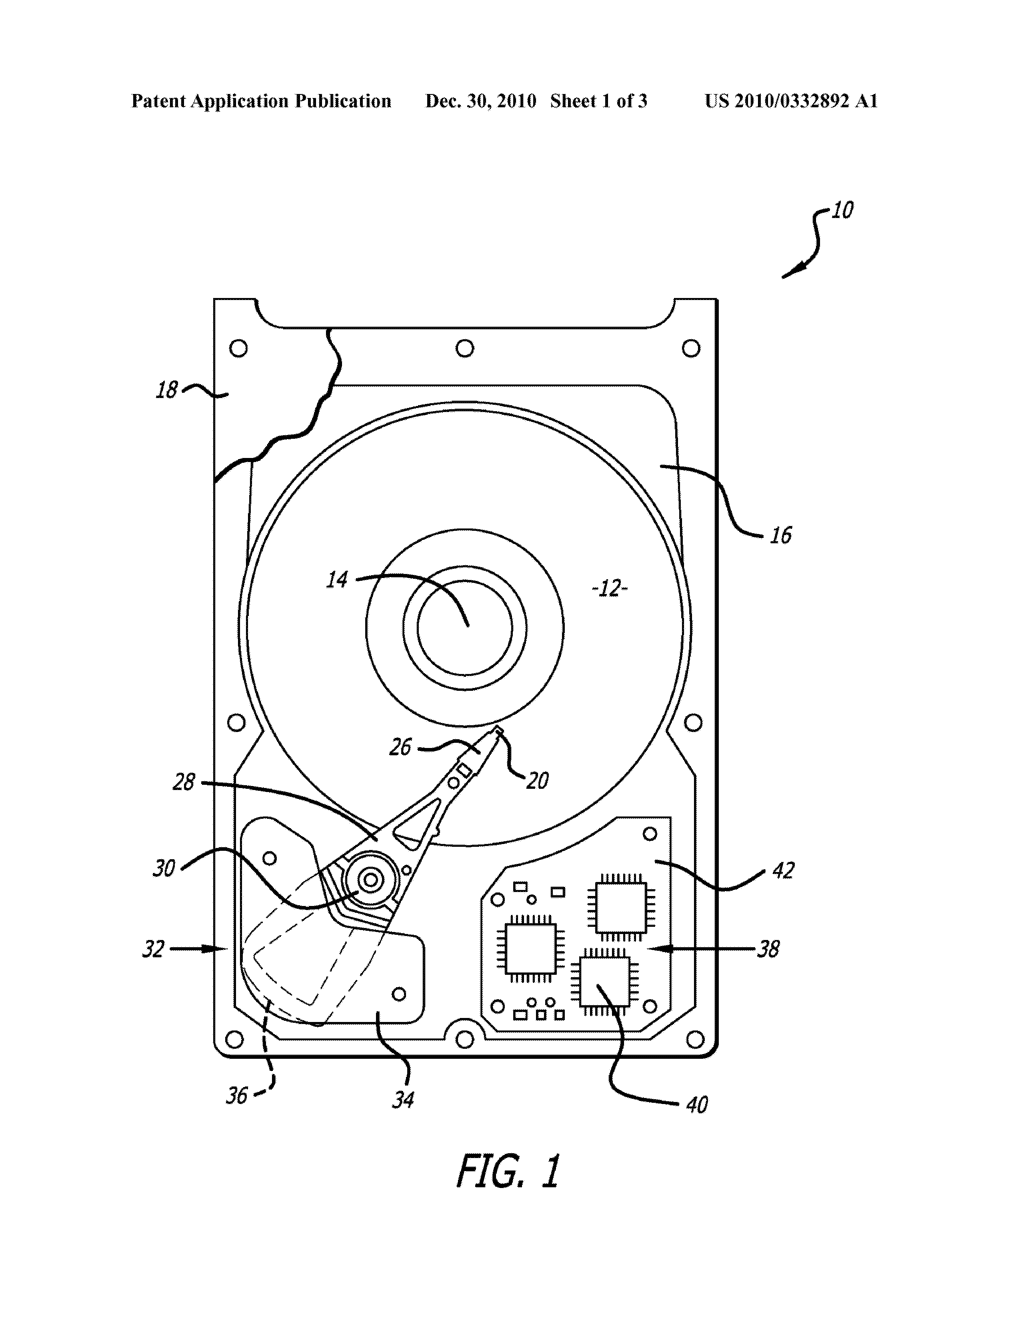 hight resolution of disk drive diagram wiring diagram schematics disk drive sketch disk drive diagram